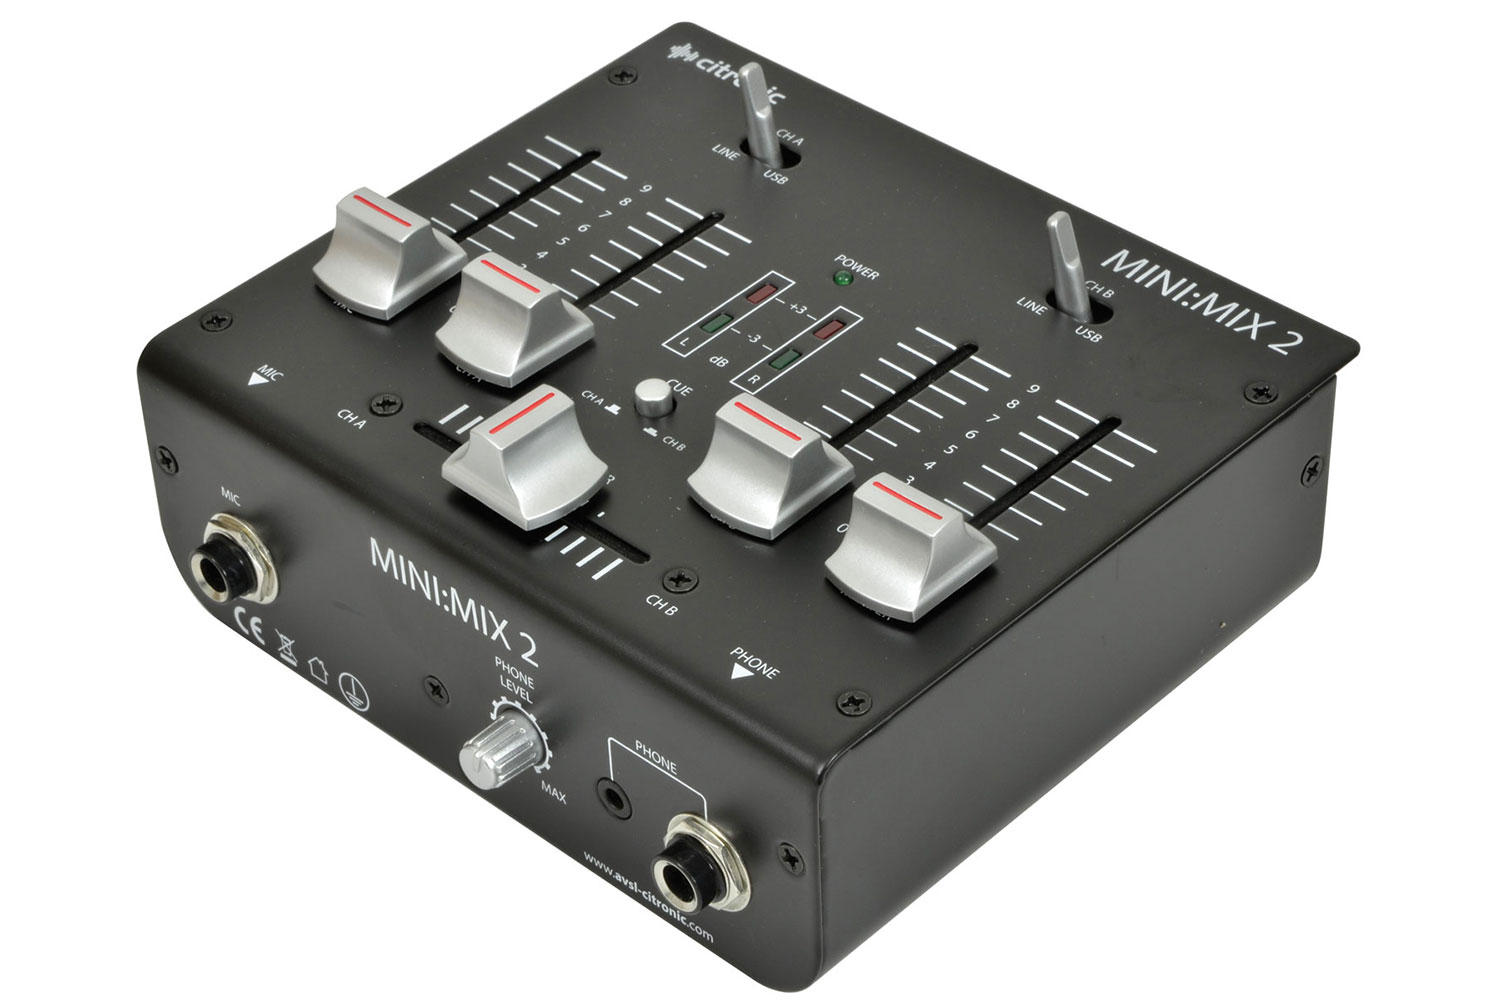 MINI:MIX2 USB mixer